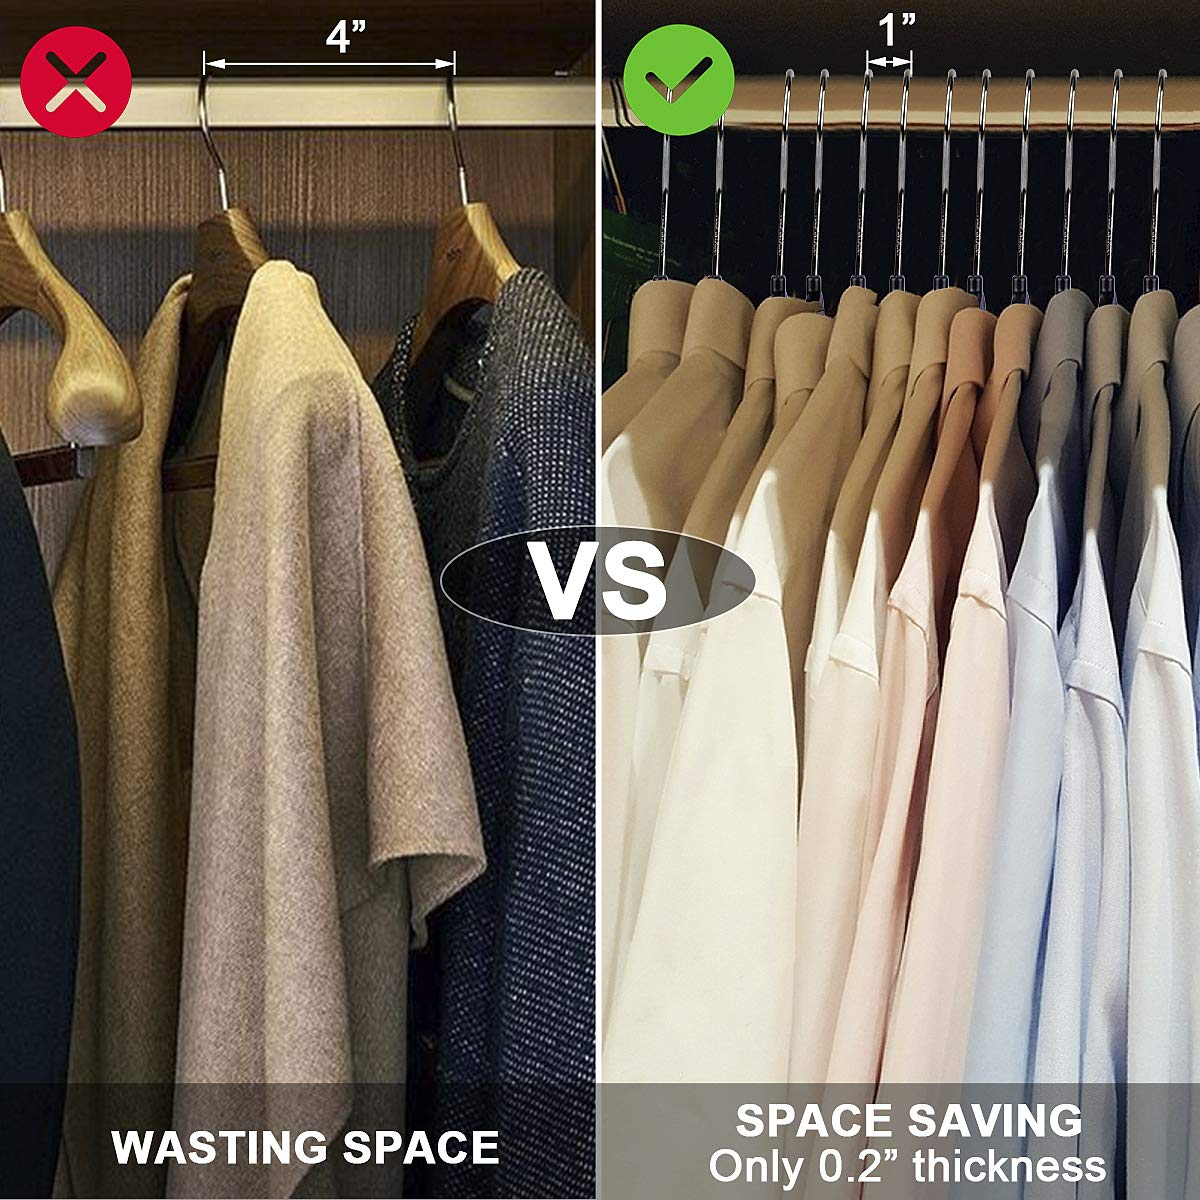 Grey Wider Size Hanger Nonslip Clothes Hangers,30 Packs Ultra Thin with Non-Slip Rubber Coating Hanger,360 Degree Swivel Hook NUOKING Plastic Hanger